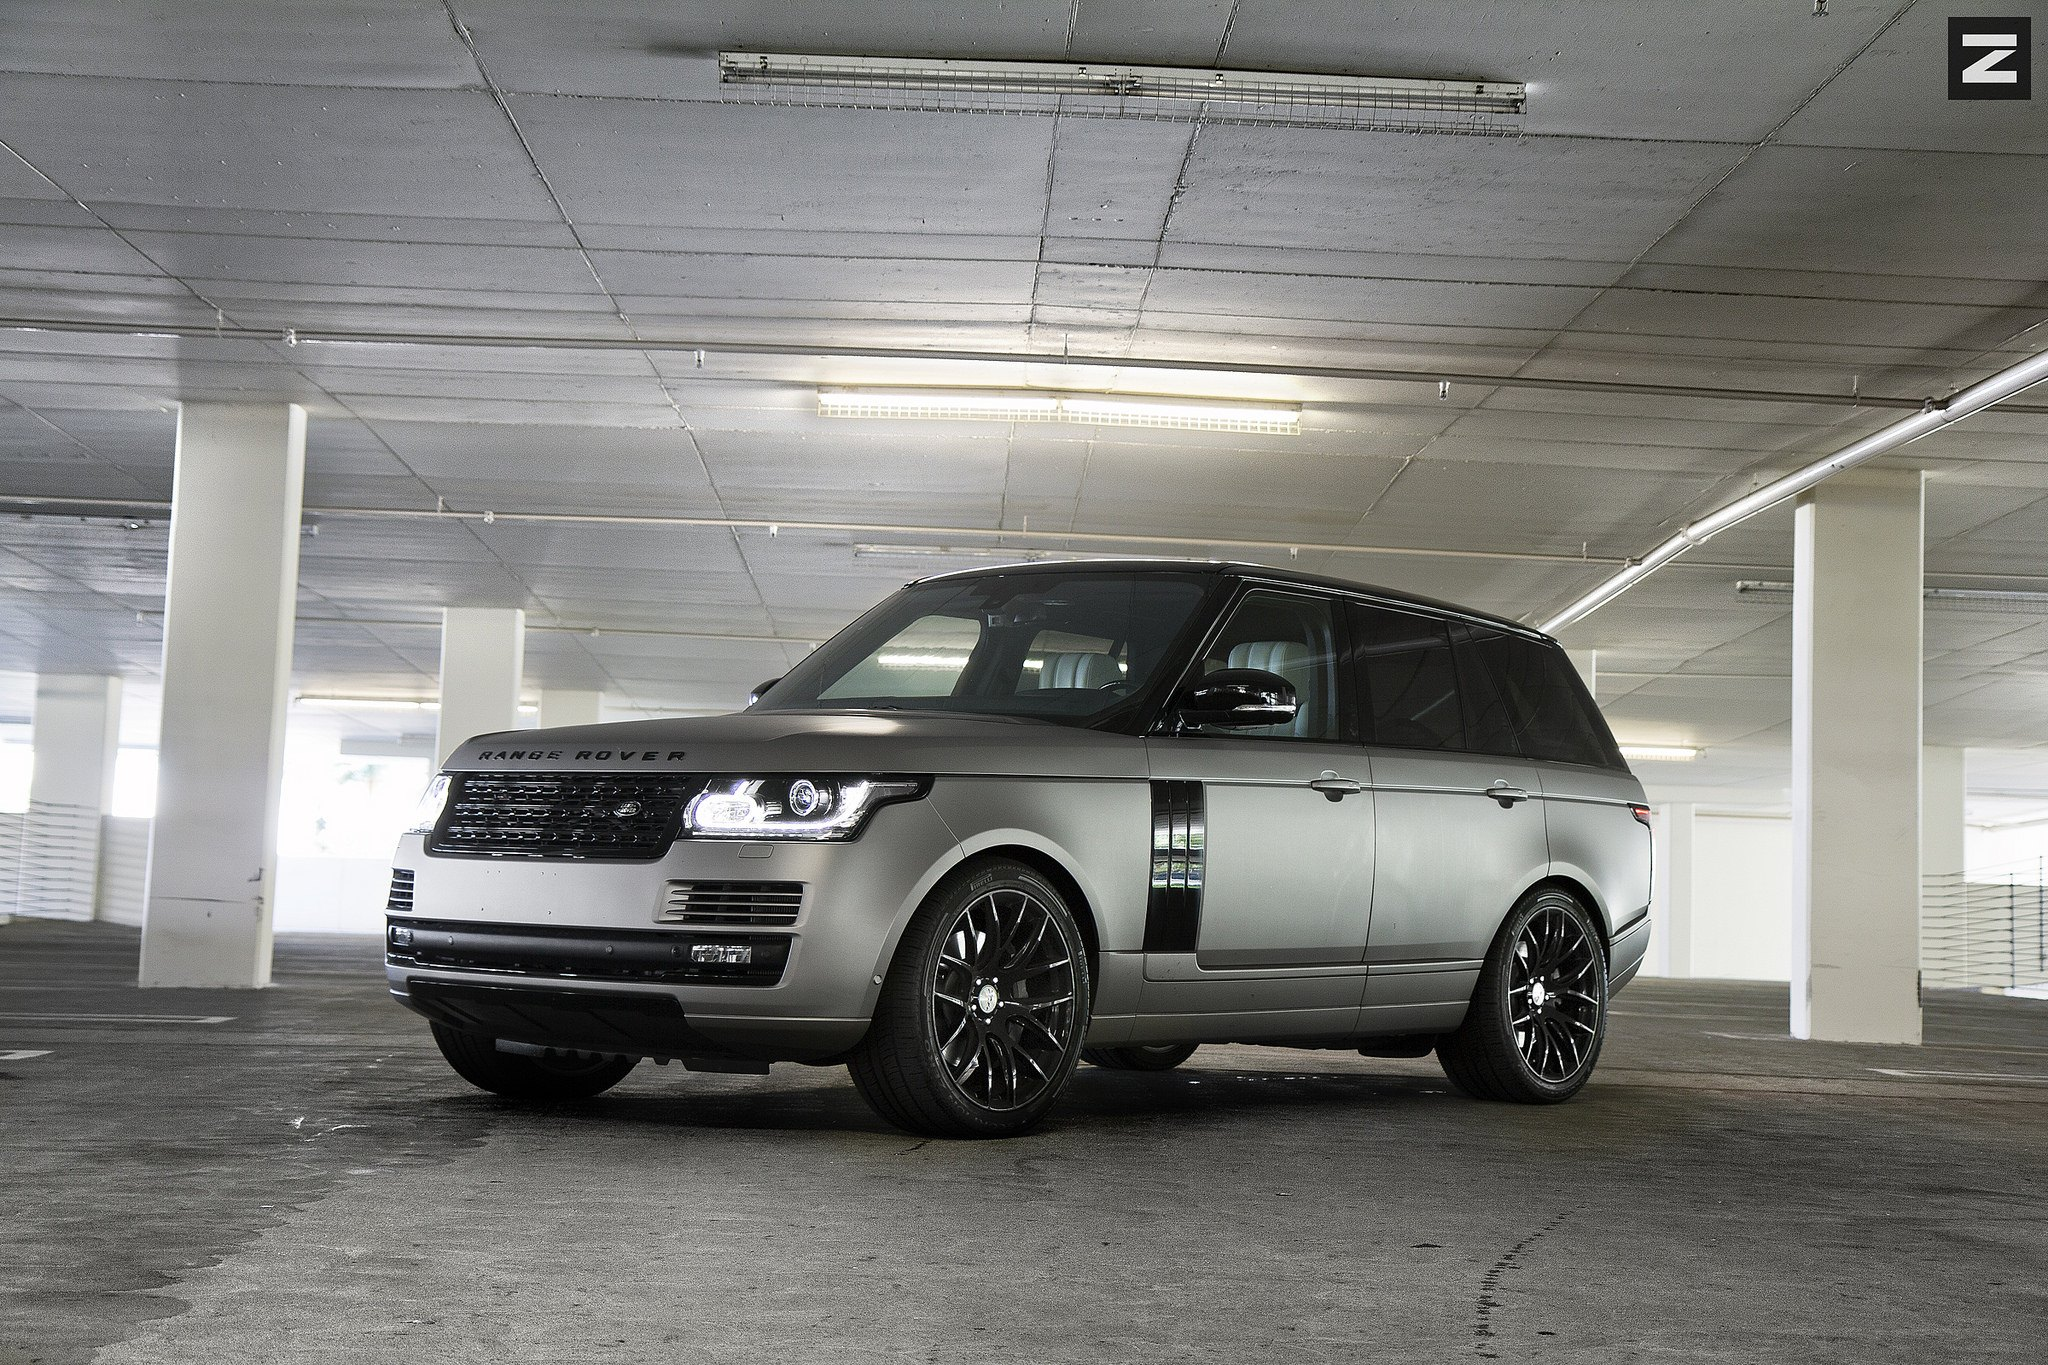 50 Shades of Rover Gray Range Rover with Blacked Out Mesh Grille